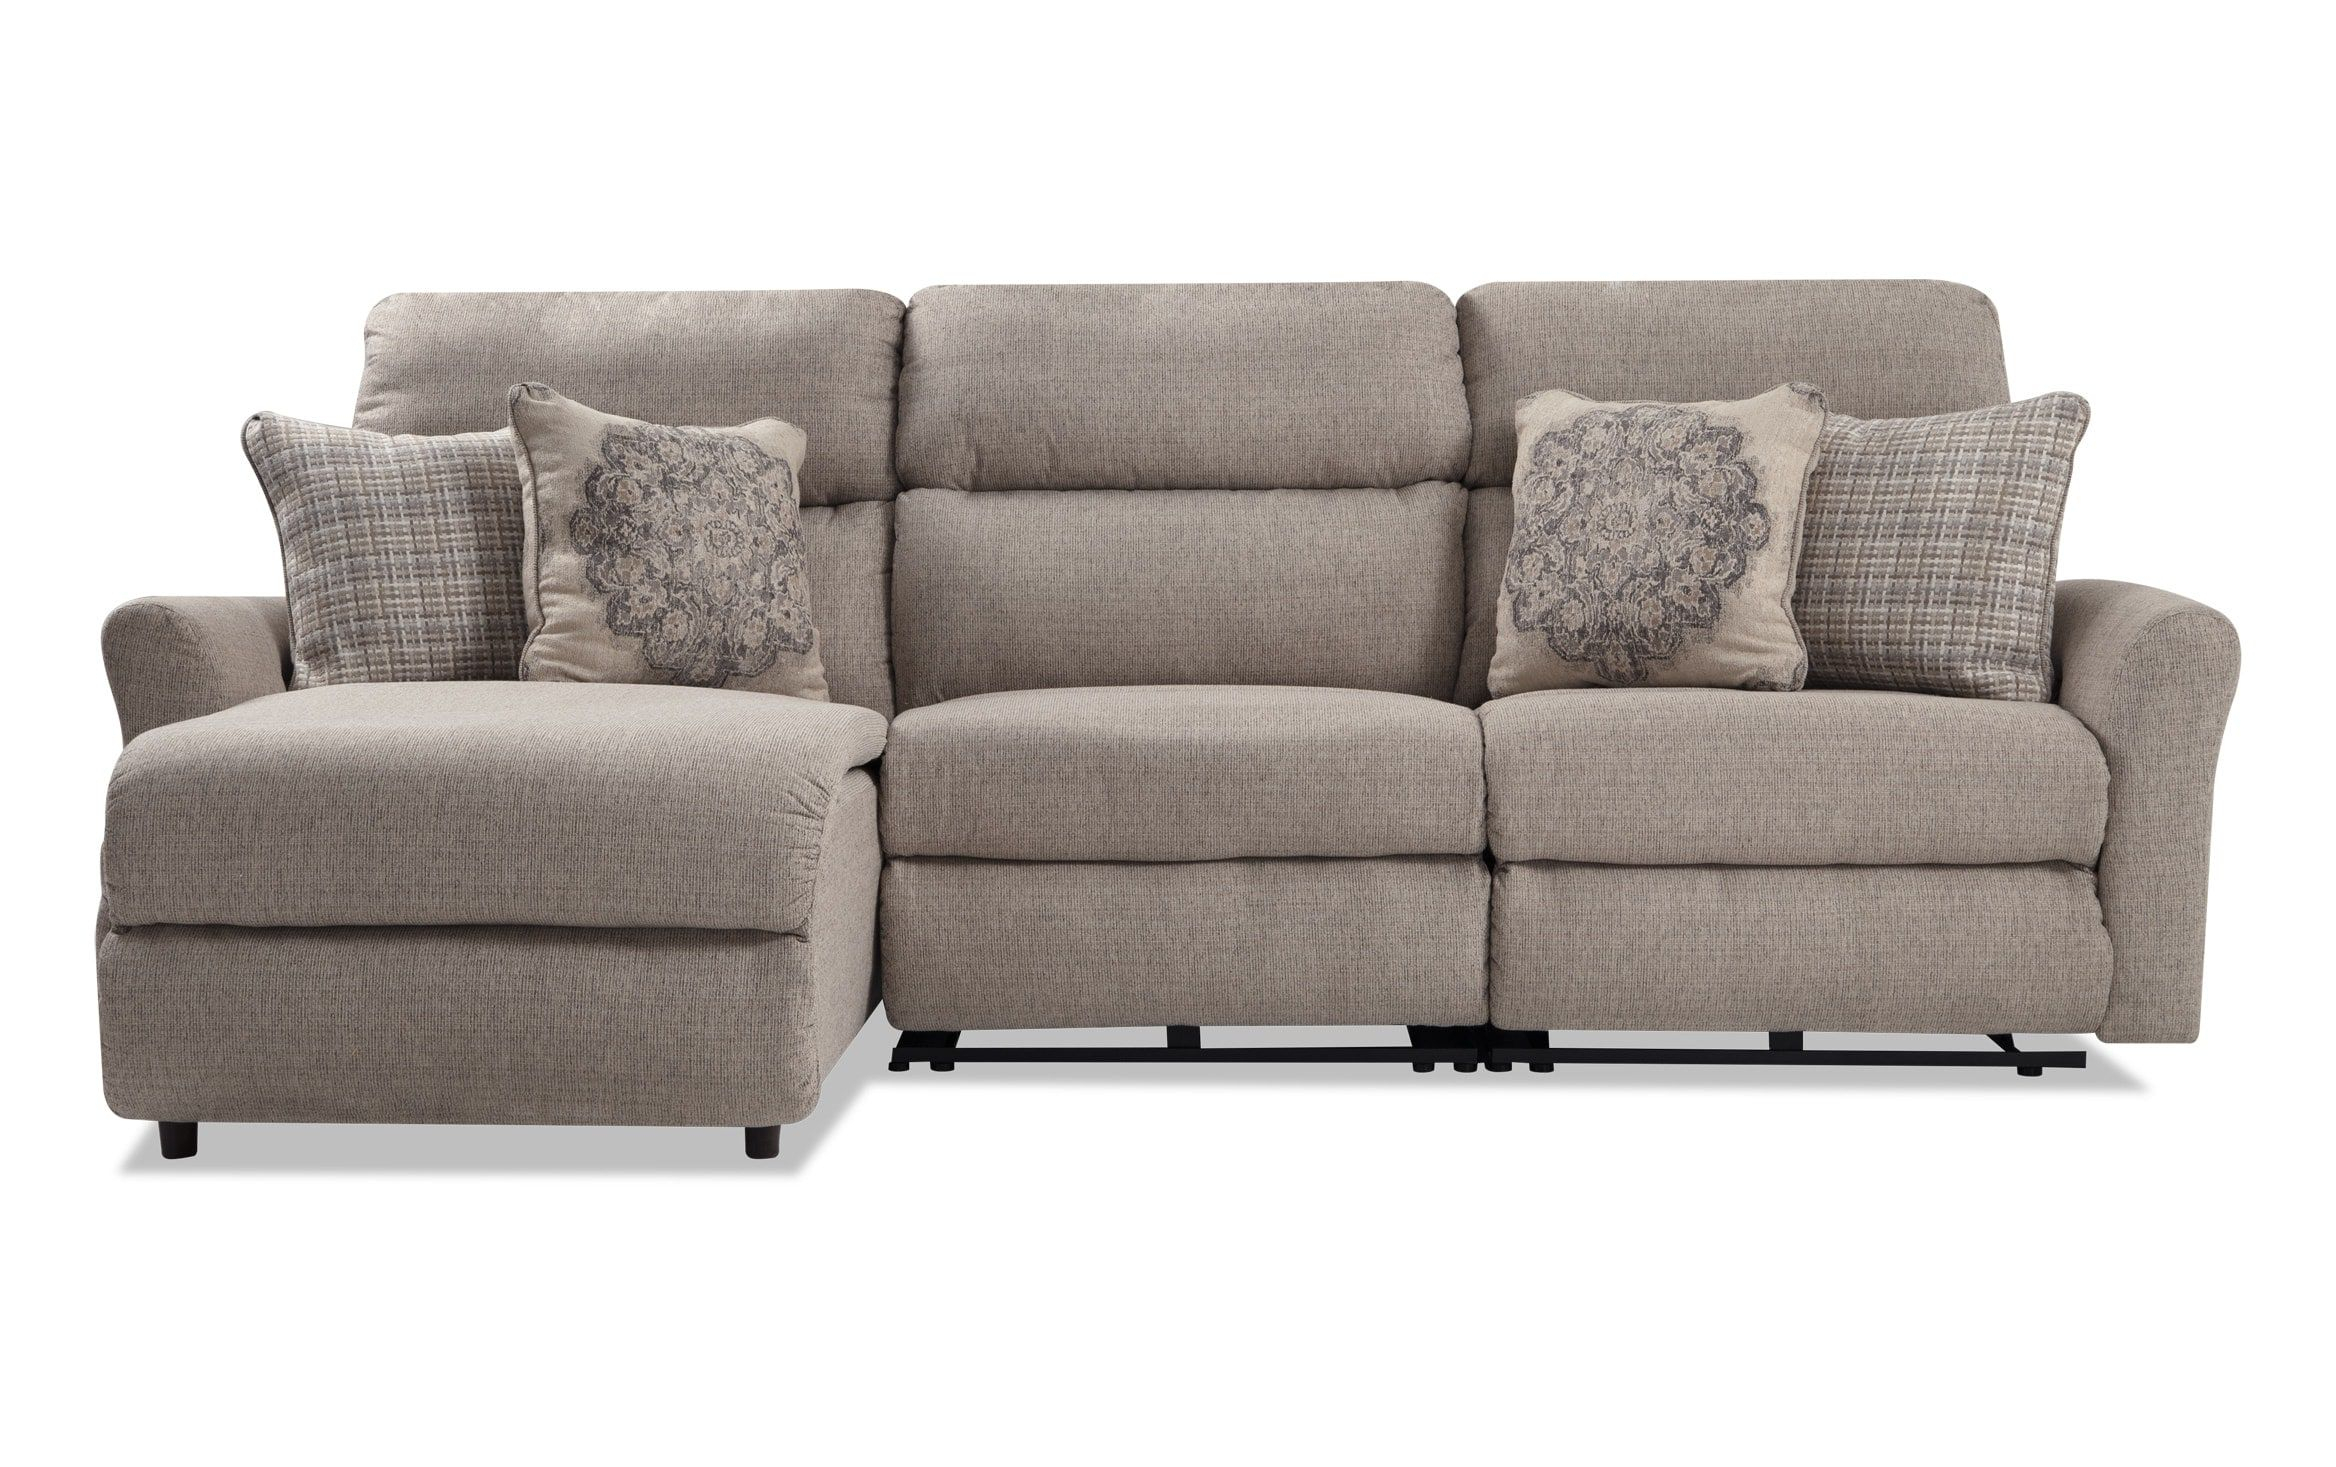 Charleston 3 Piece Right Arm Facing Power Reclining Regarding Charleston Triple Power Reclining Sofas (View 8 of 15)